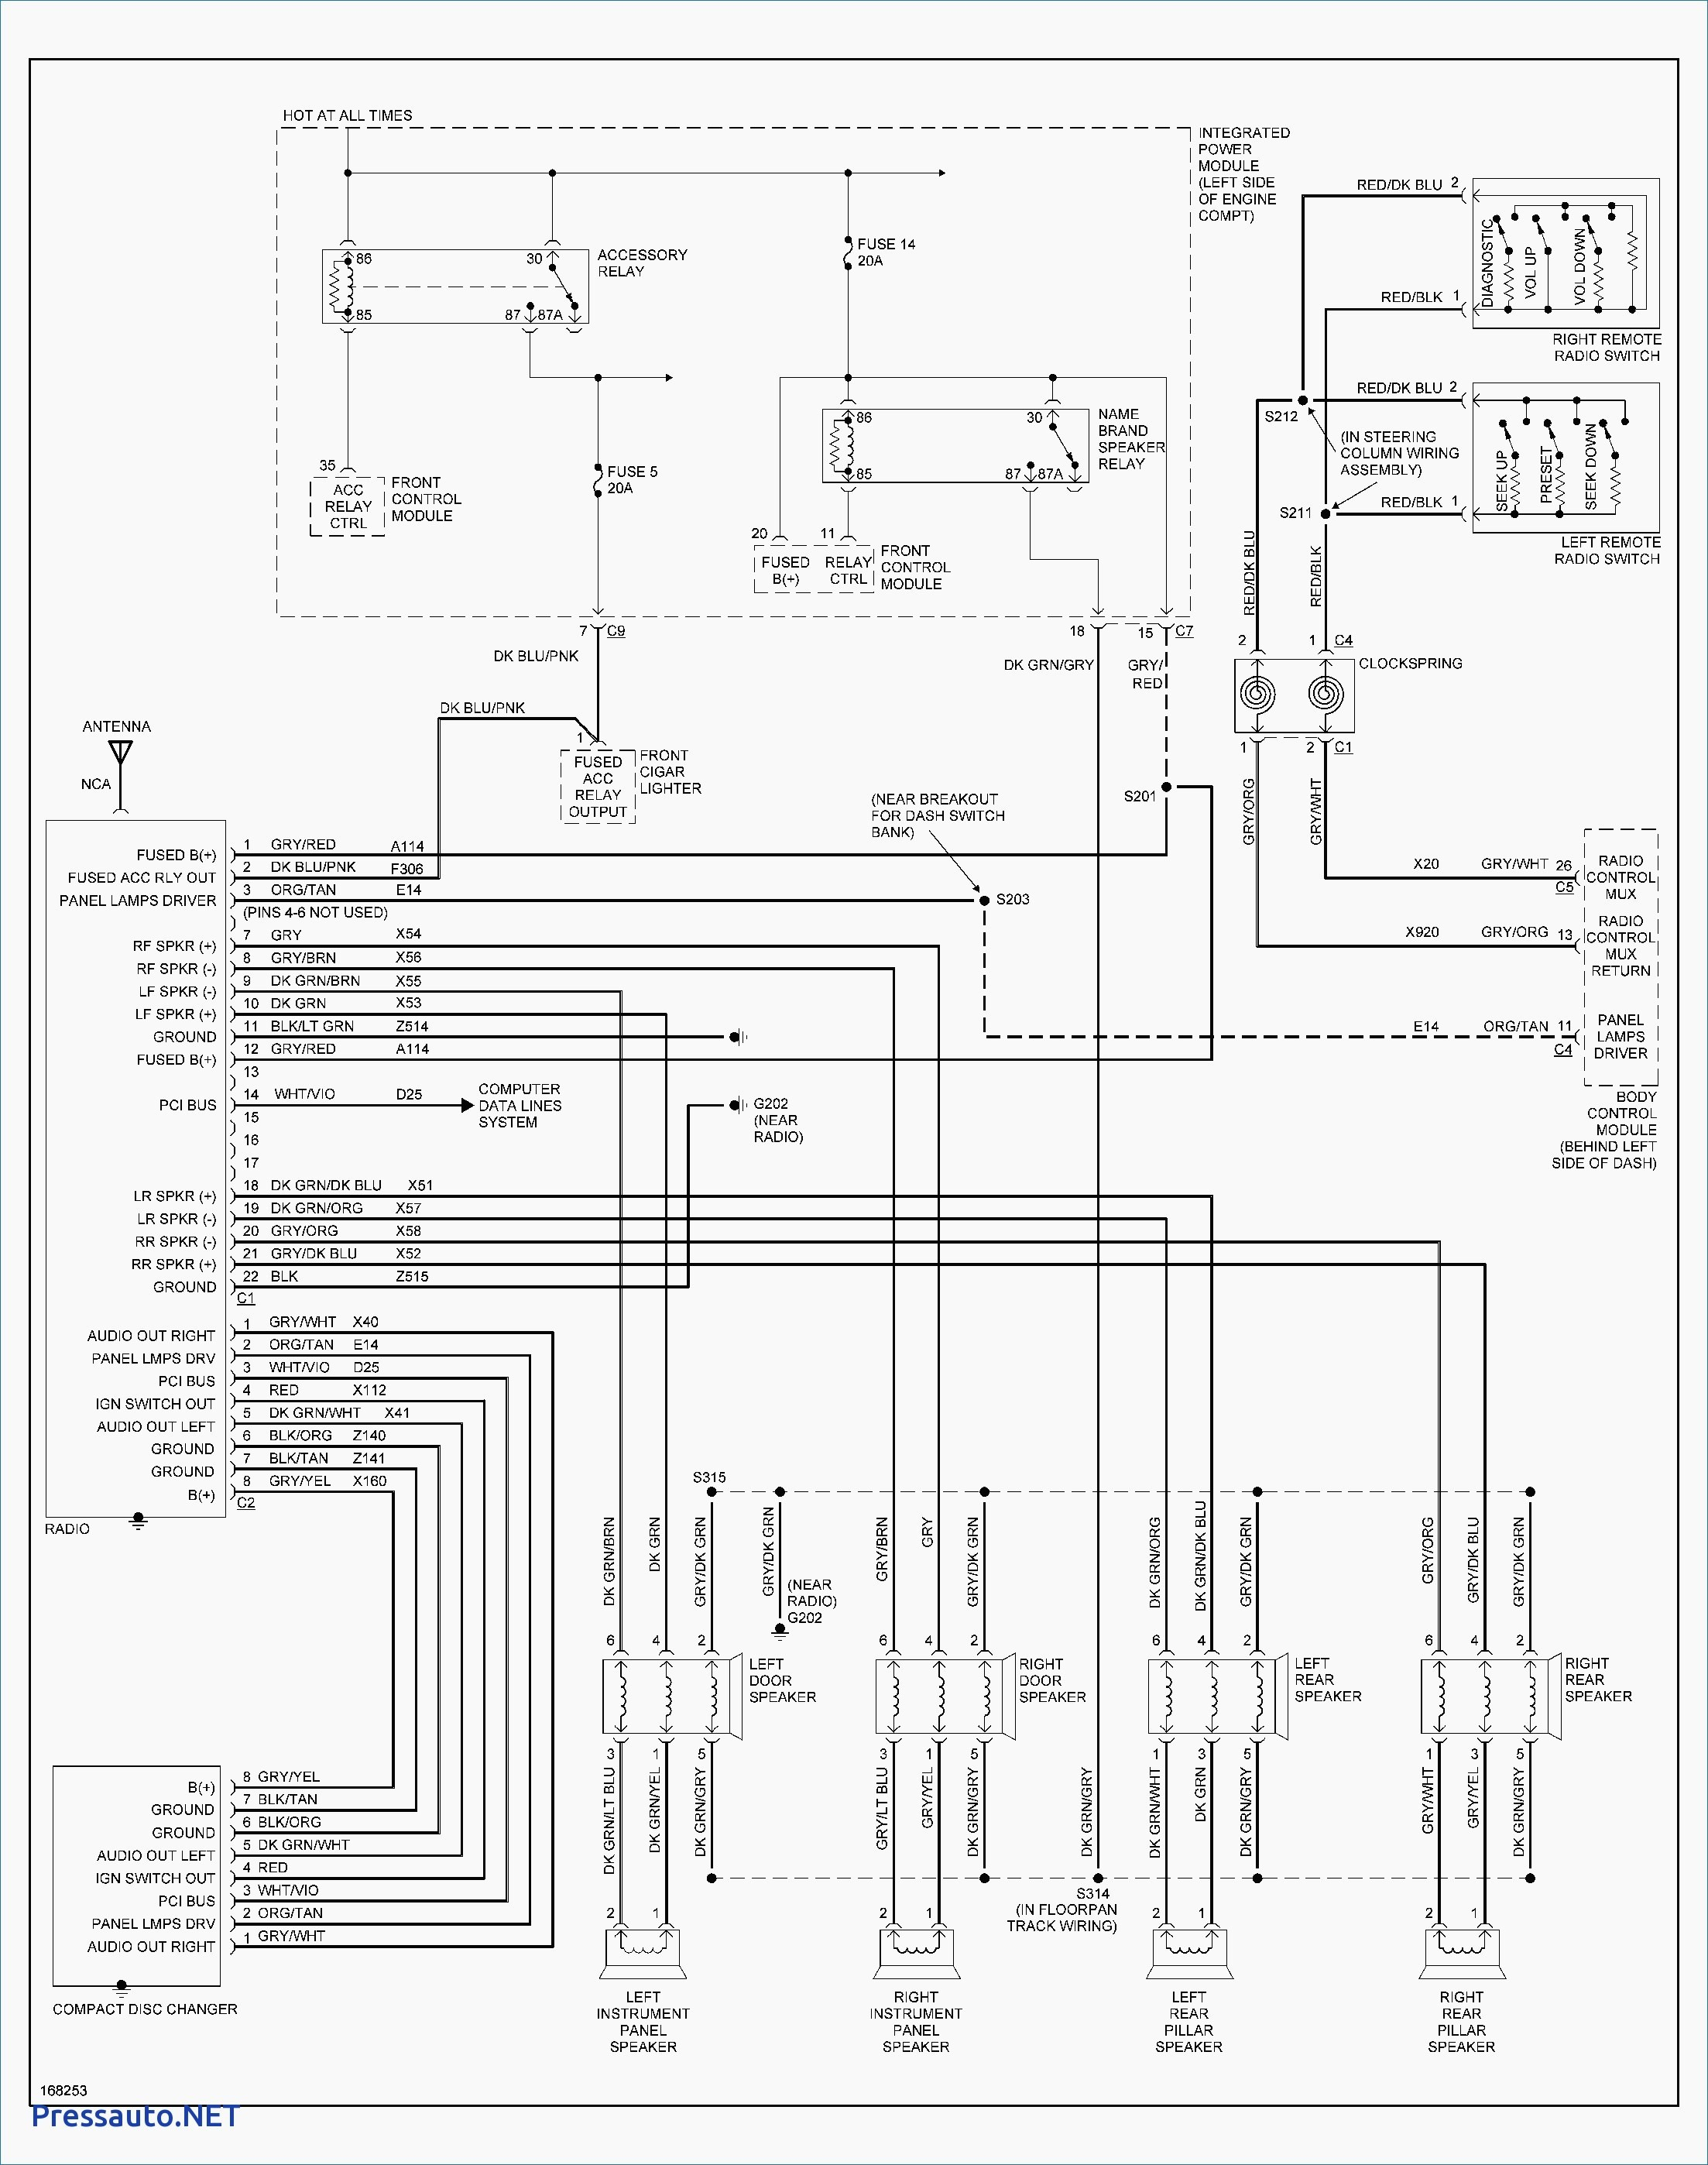 Wiring Diagram For 96 Dodge Ram Overdrive Switch Of 2002 1500 On - Dodge Ram 1500 Wiring Diagram Free